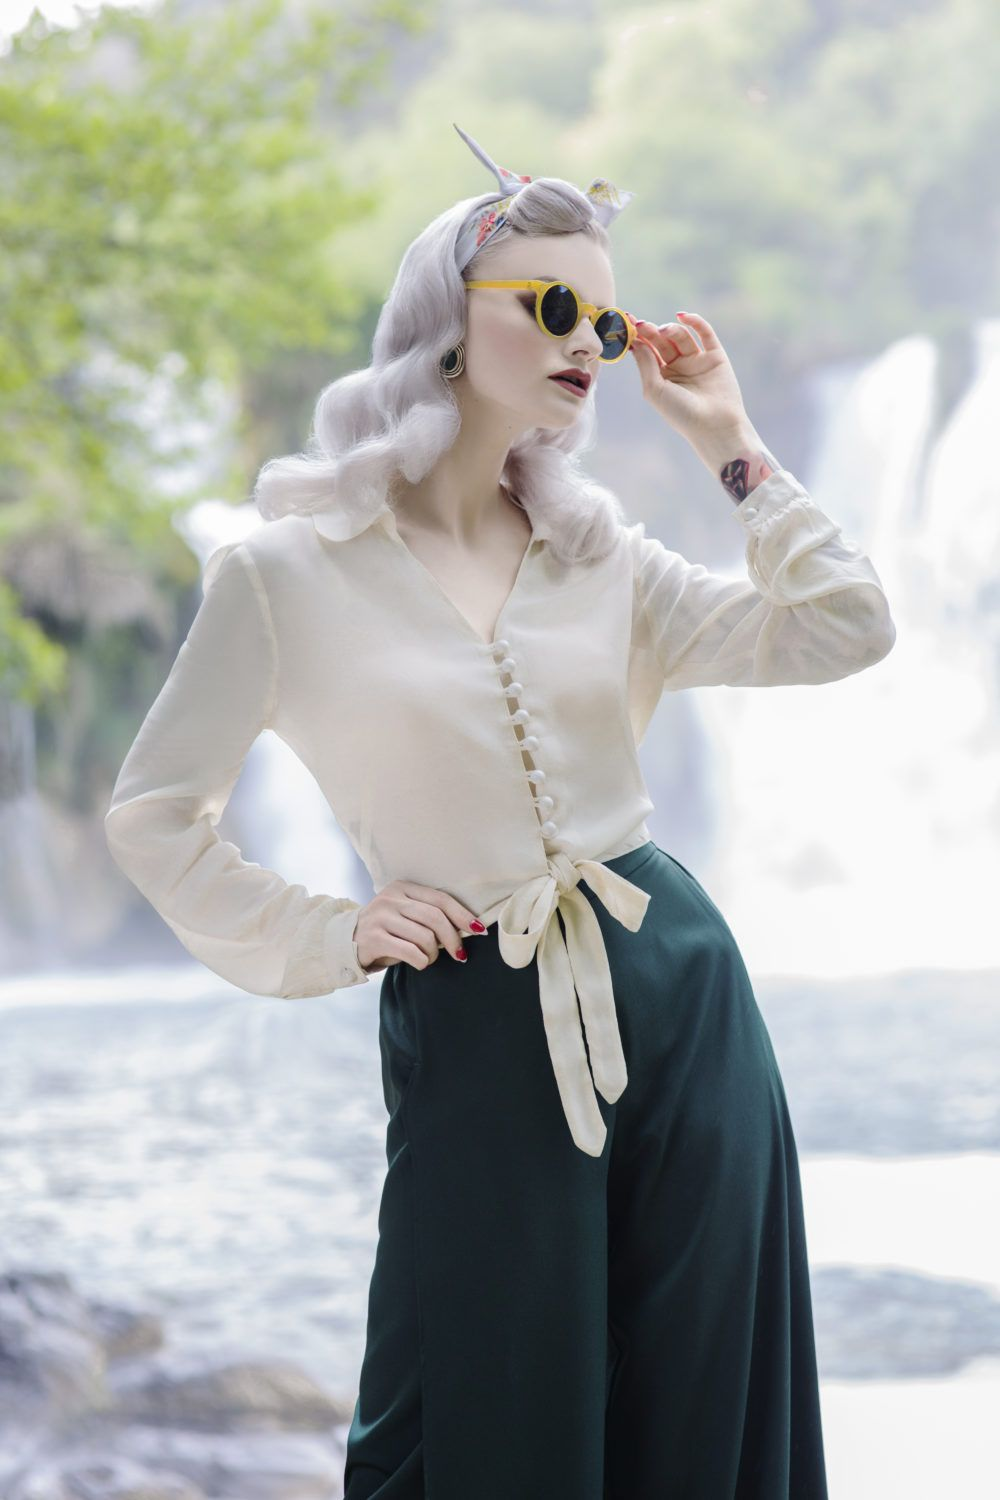 b66e0abf5f8a9f Our womens 1940s authentic vintage style puff sleeve blouse. This fabulous  Blouse has a very flattering shape with a classic 40 s collar and front tie  ...